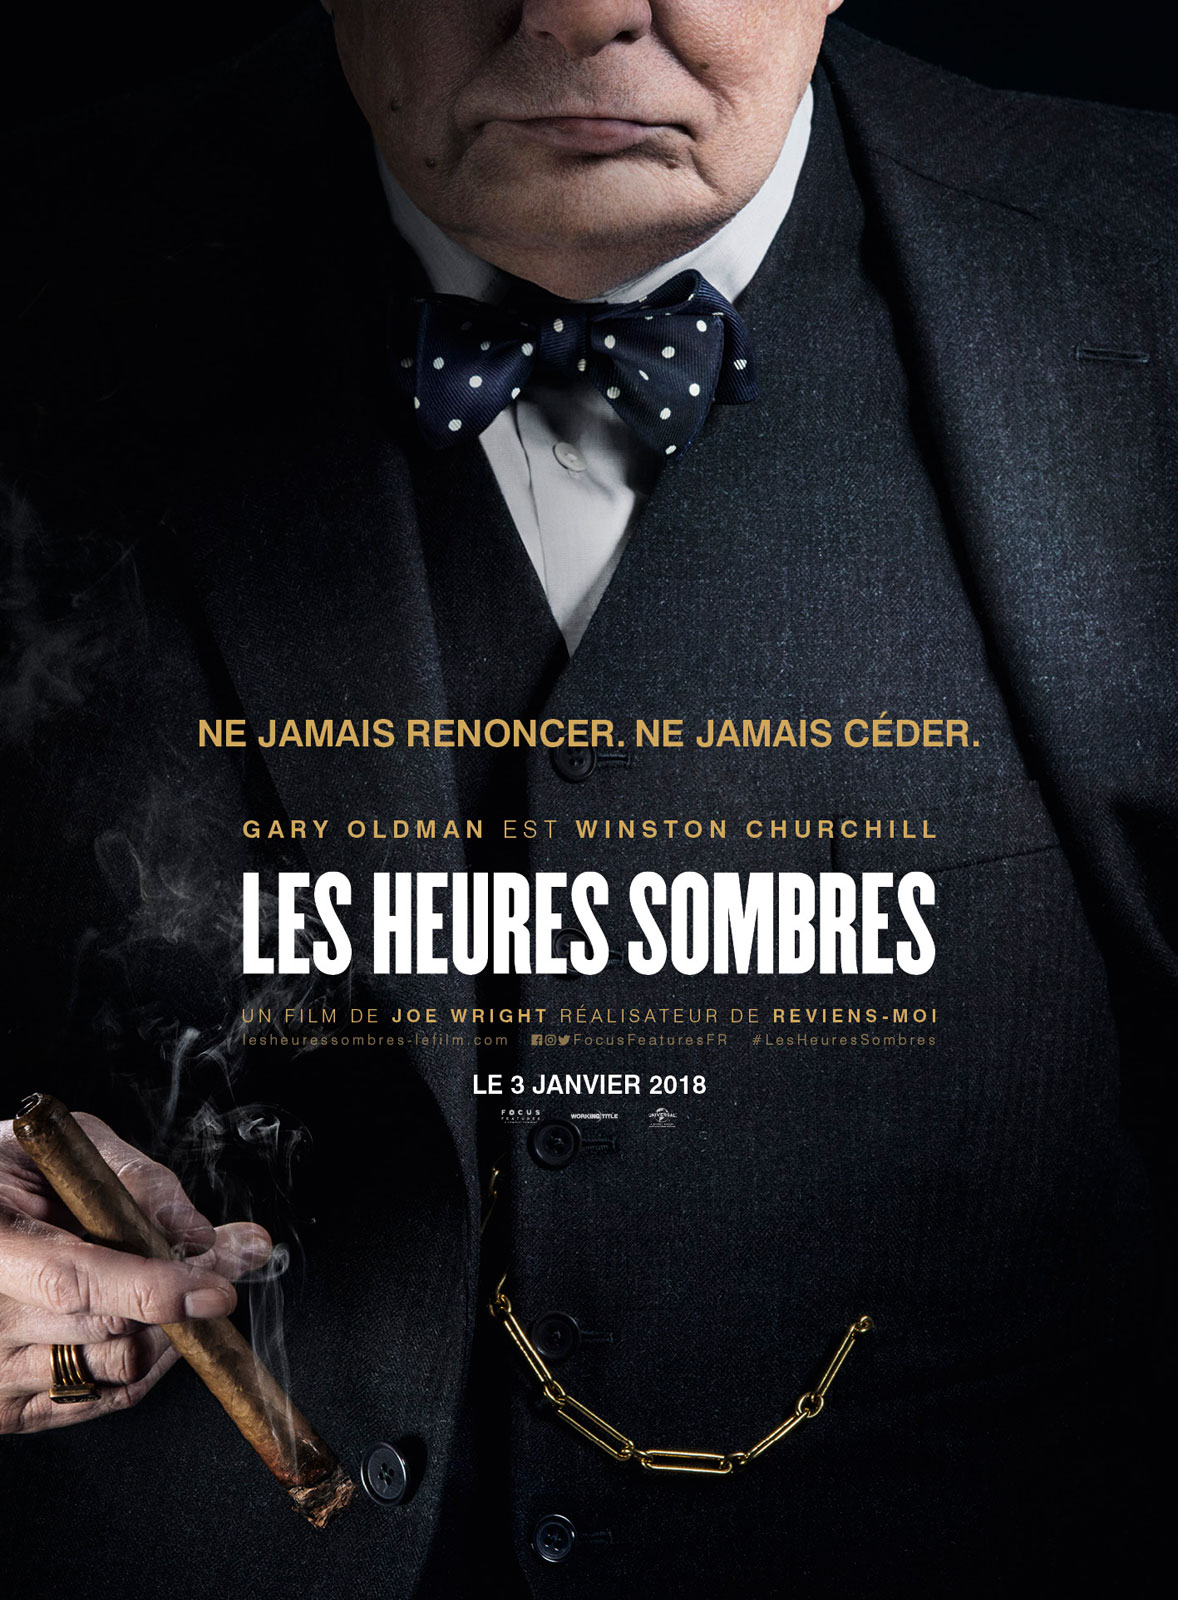 Les heures sombres FRENCH DVDRIP 2018